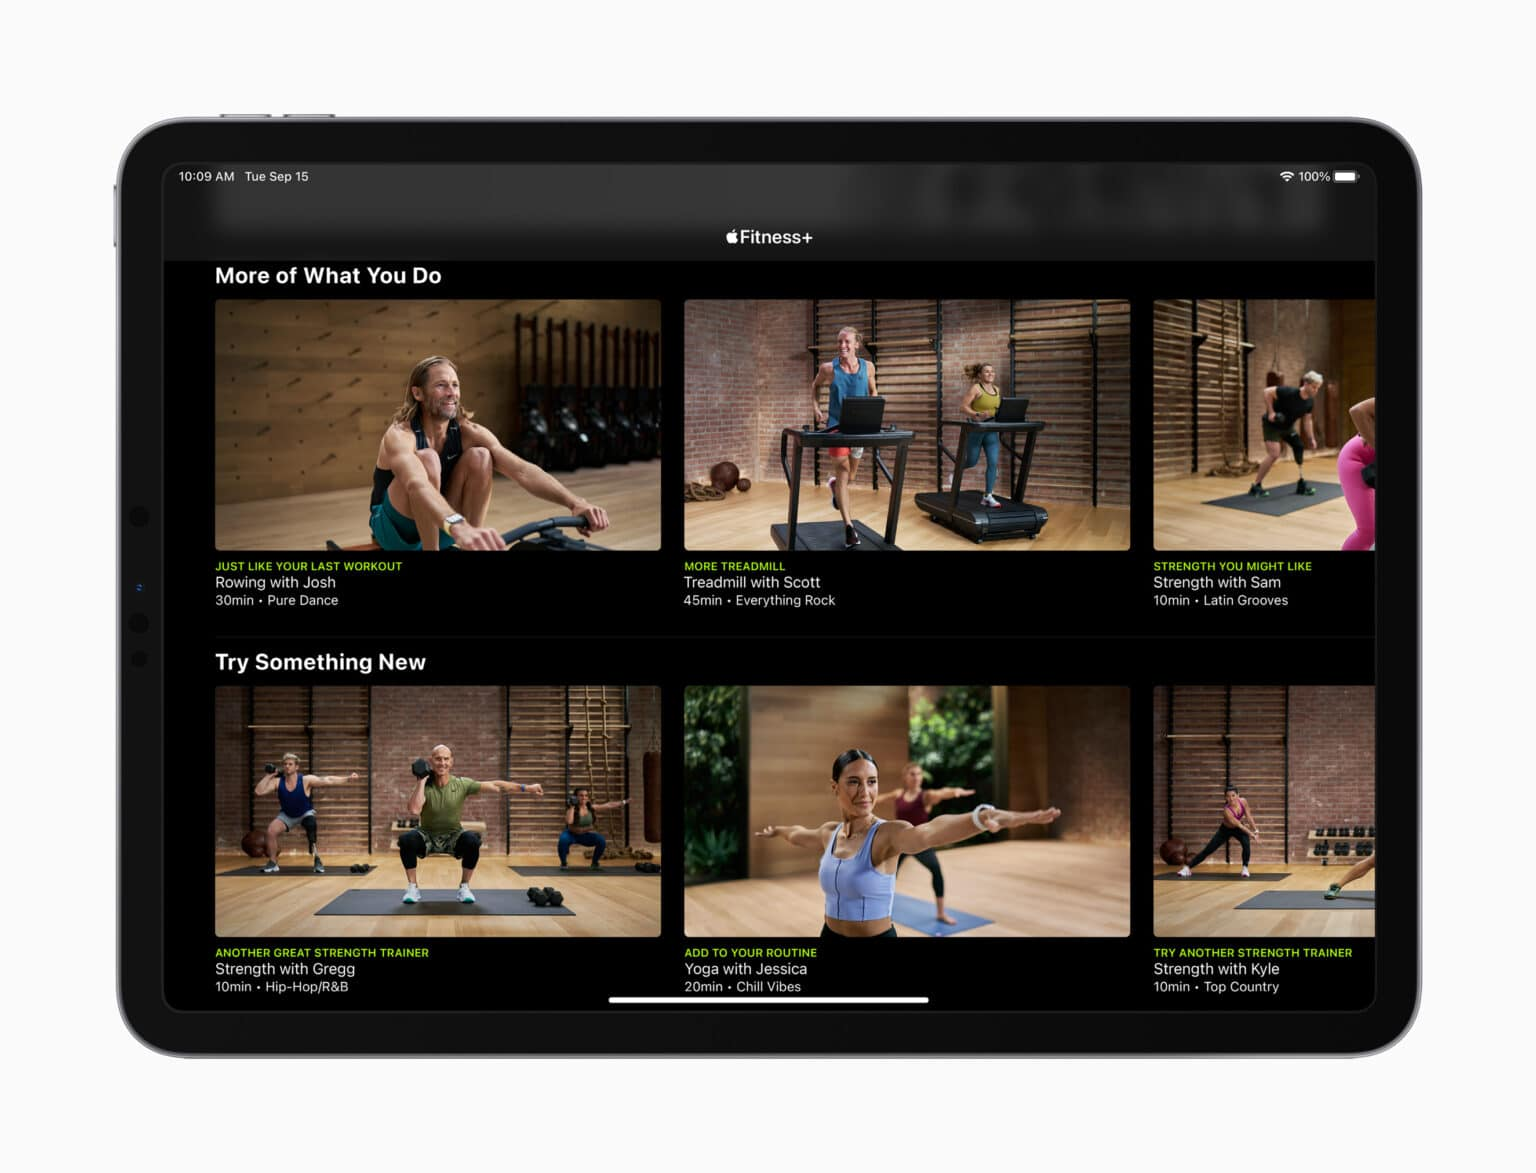 Apple Watch is key to the new Apple Fitness+ subscription service.